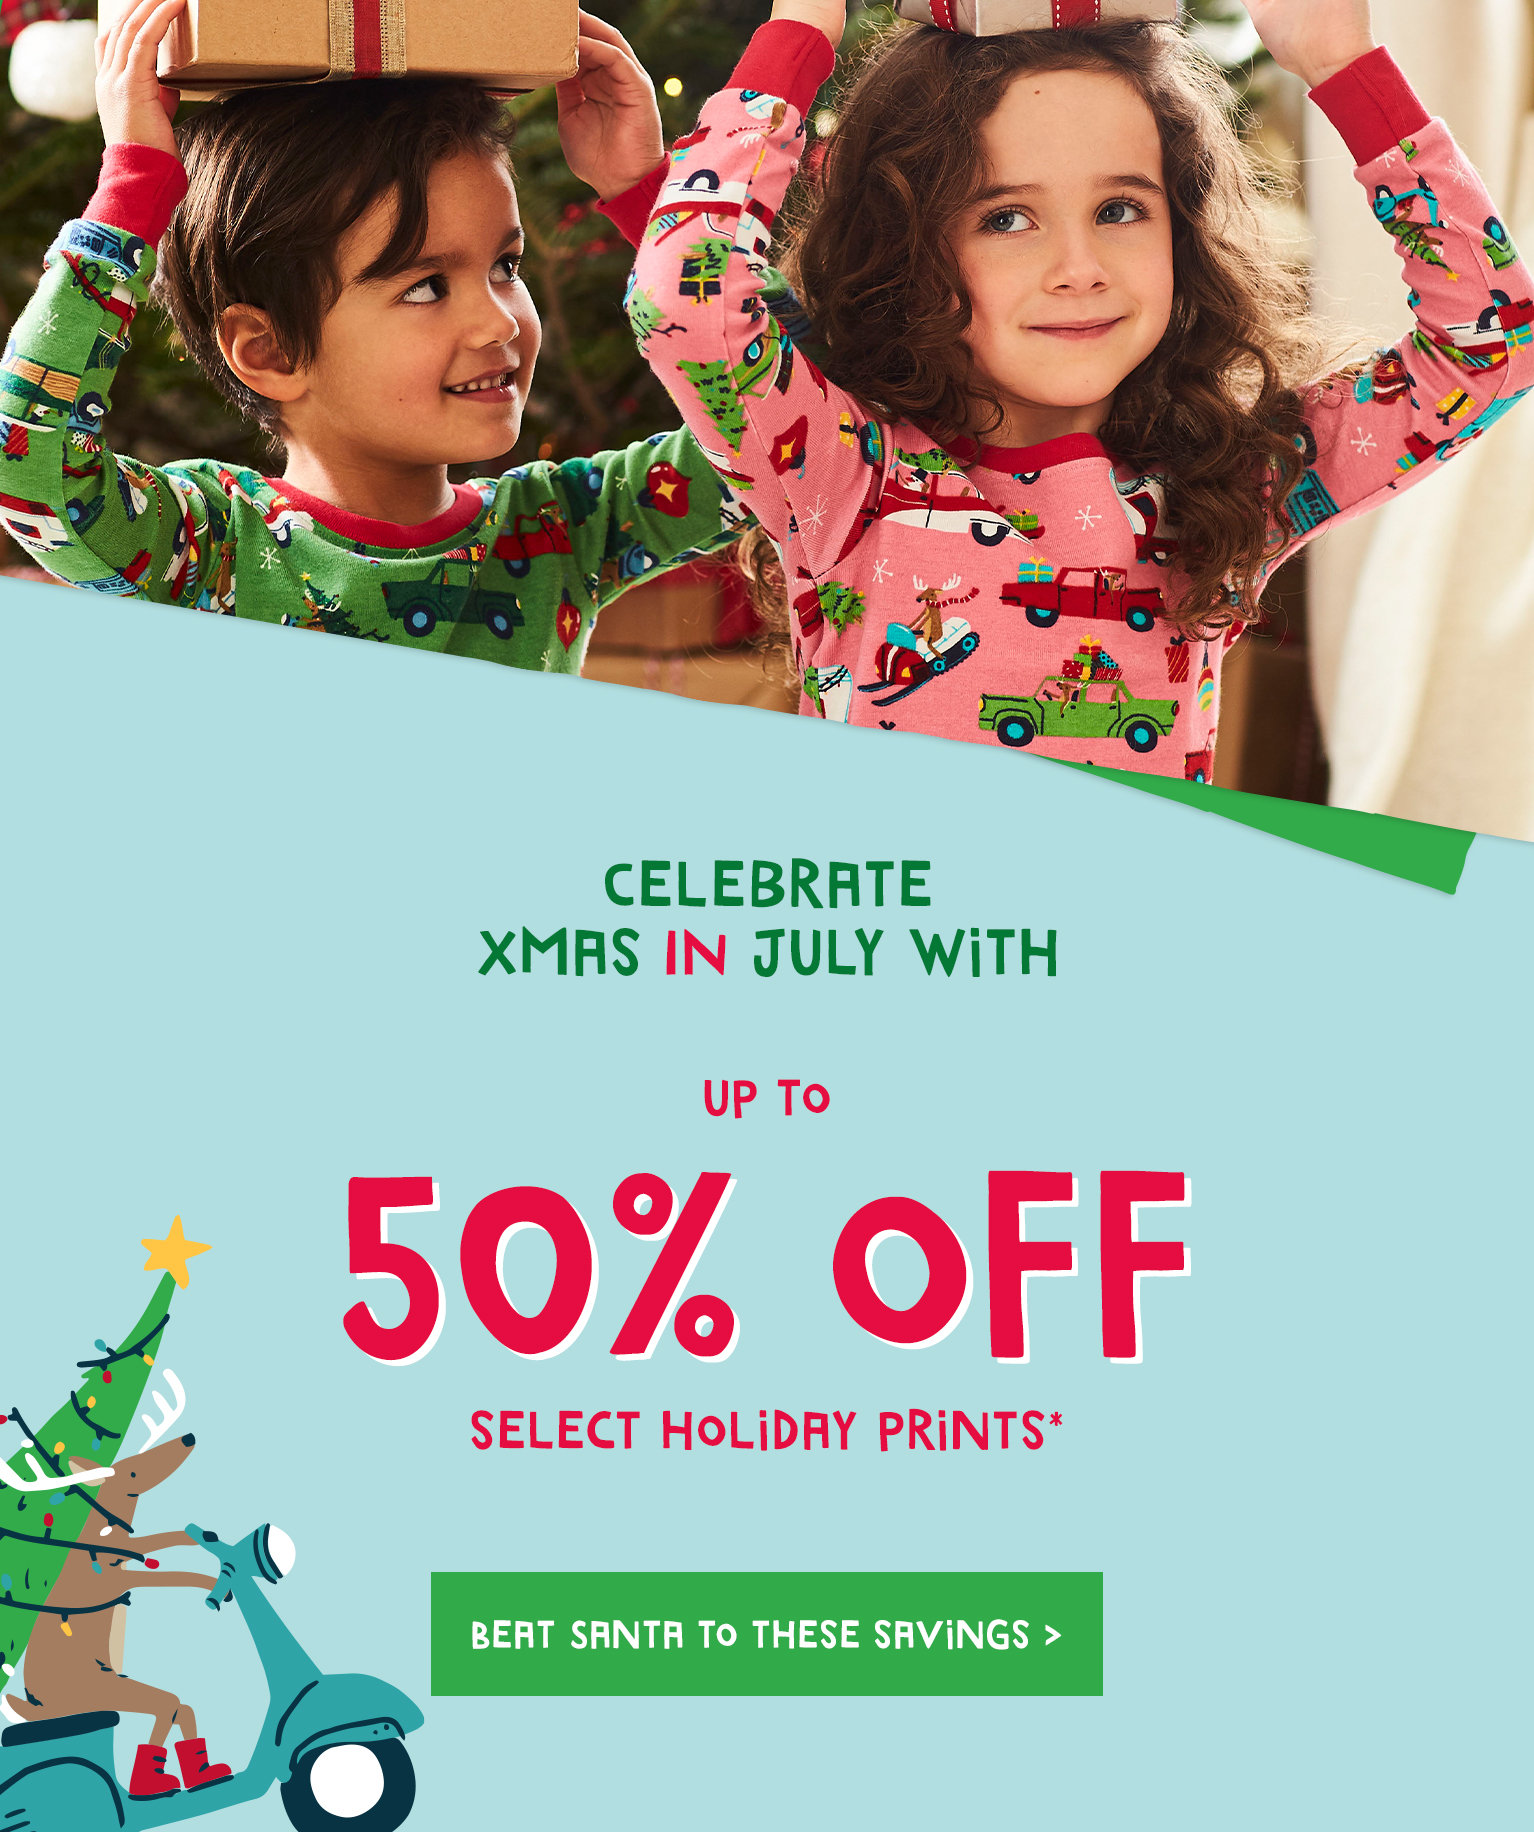 xmas in July - up to 50% off select holiday prints